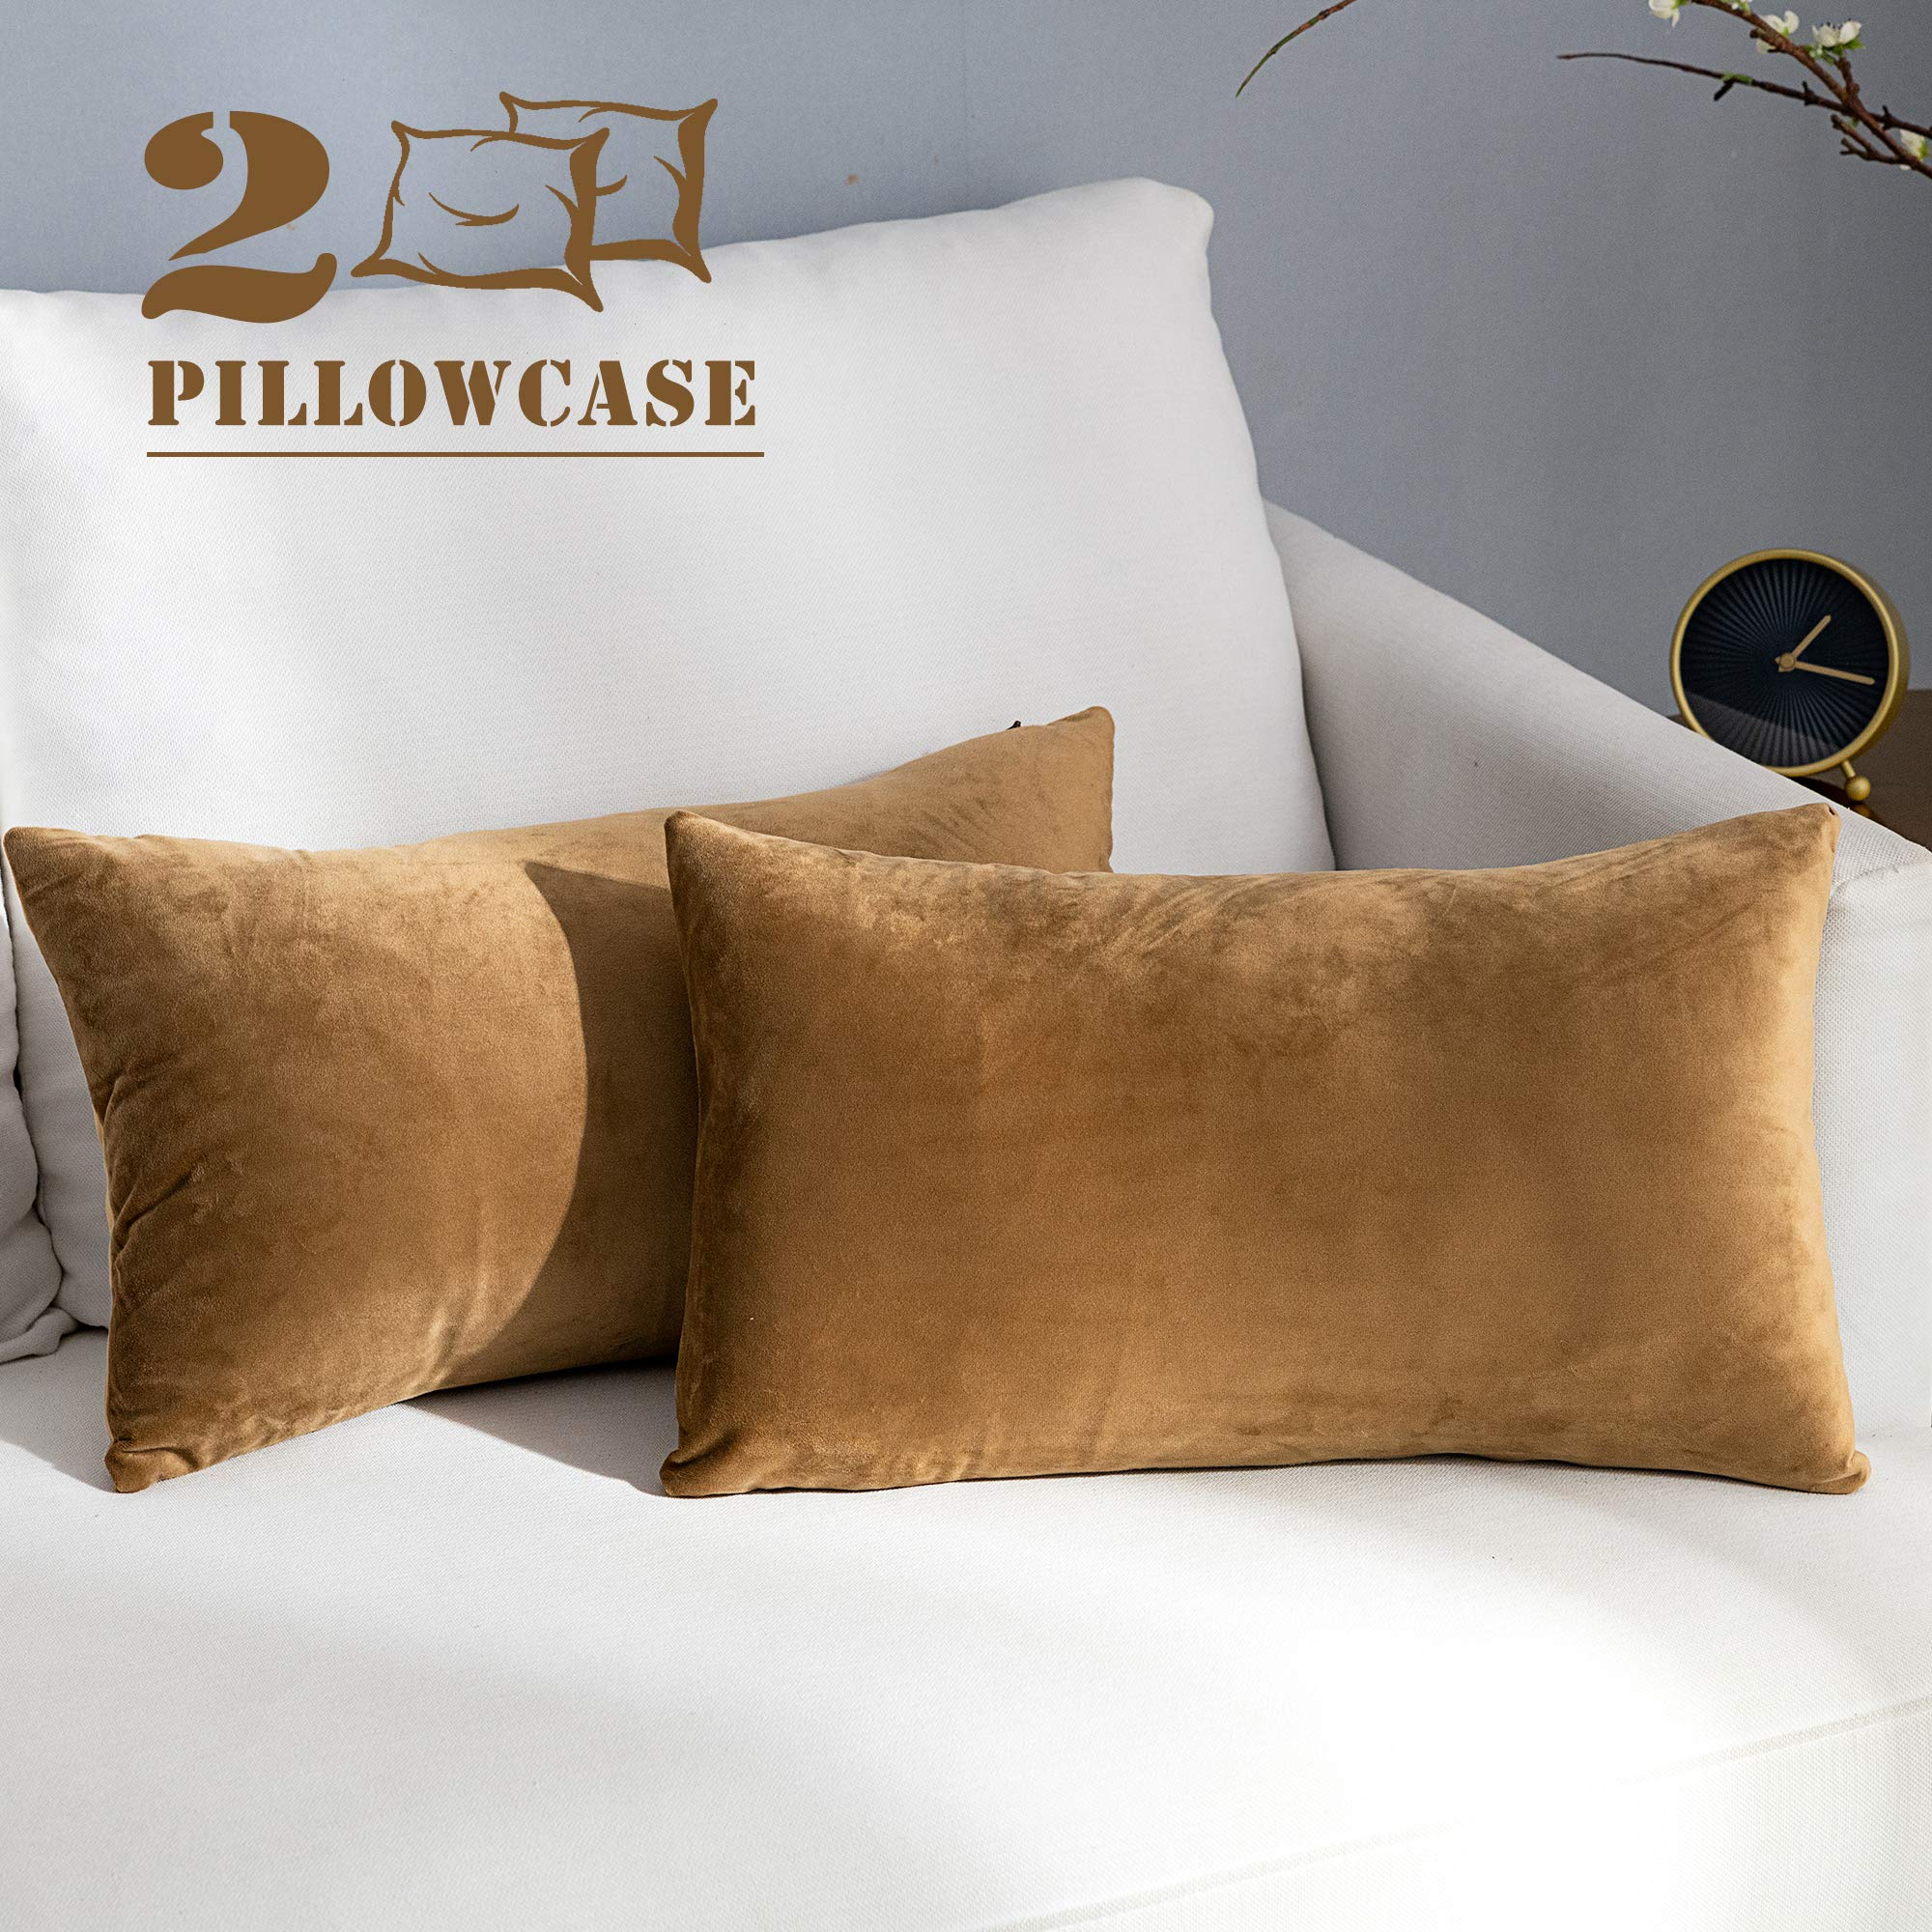 NANPIPER Set of 2 Velvet Soft Decorative Cushion Throw Pillow Covers 12x20 Inch/30x50 cm Cozy Solid Velvet Square Pillowcase Cushion Covers Khaki for Couch and Bed